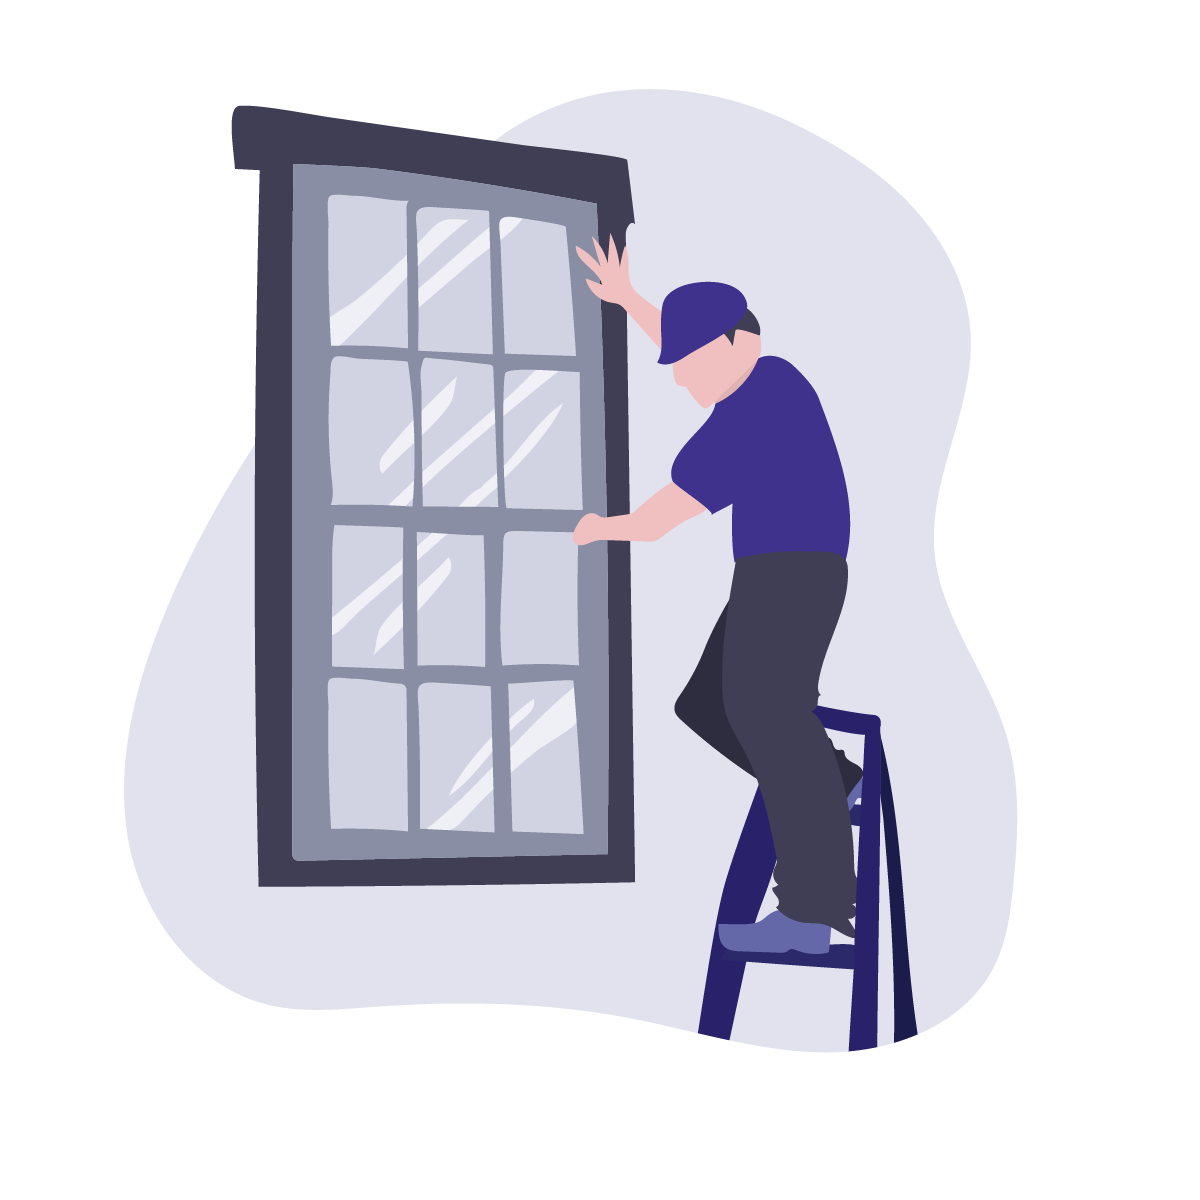 aaa window glass installation illustration